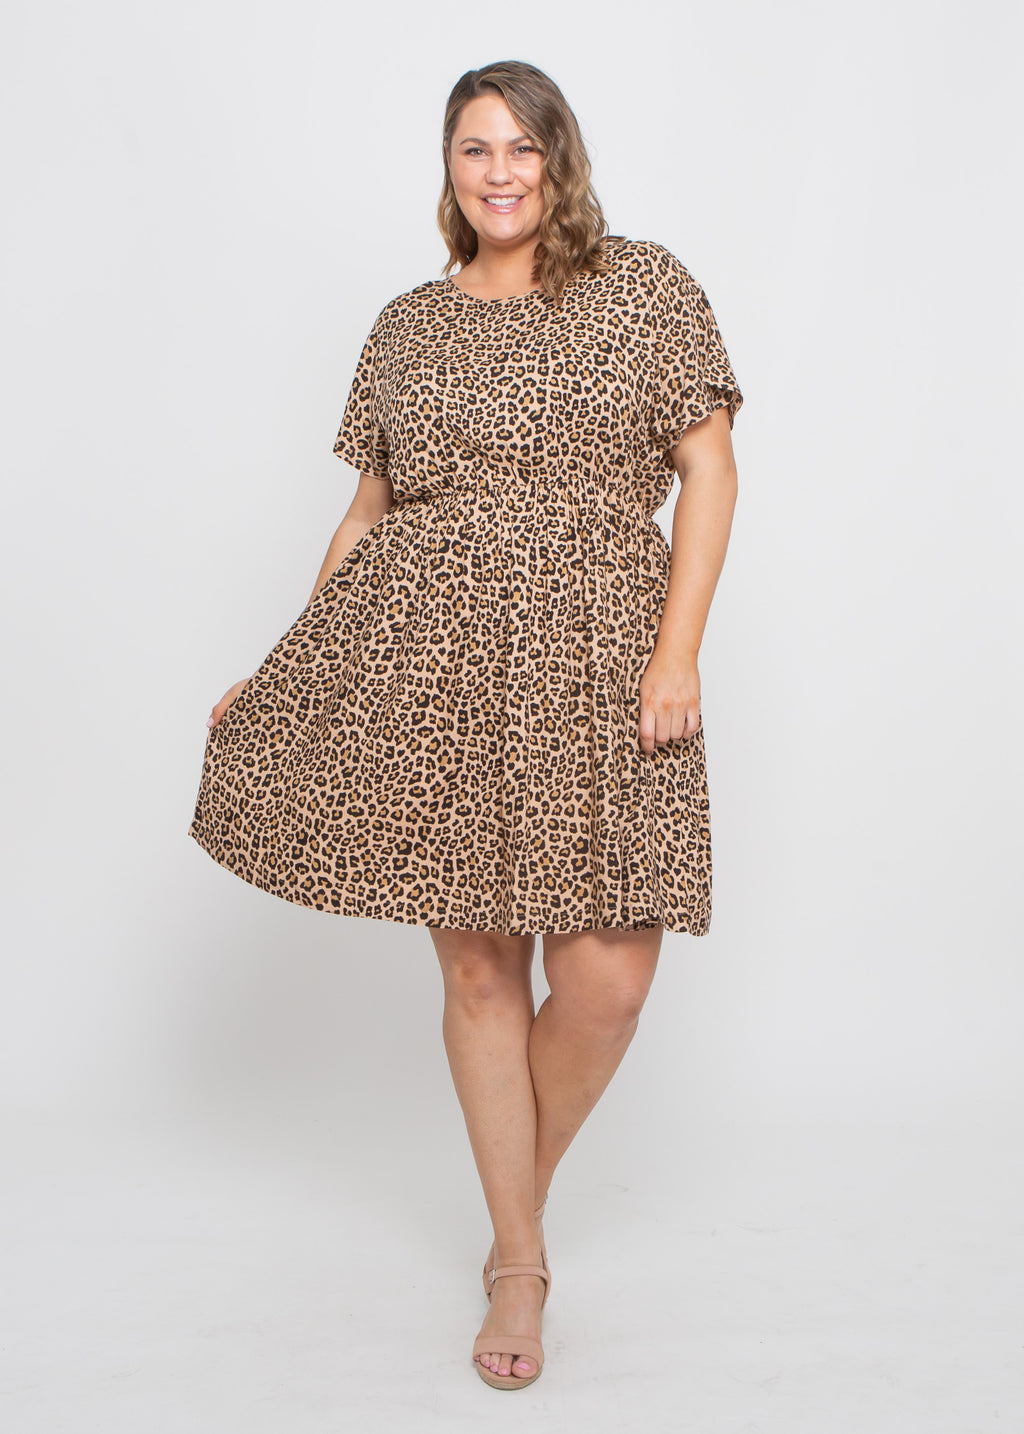 ASPEN DRESS - CAMEL LEOPARD - MARK DOWN MADNESS